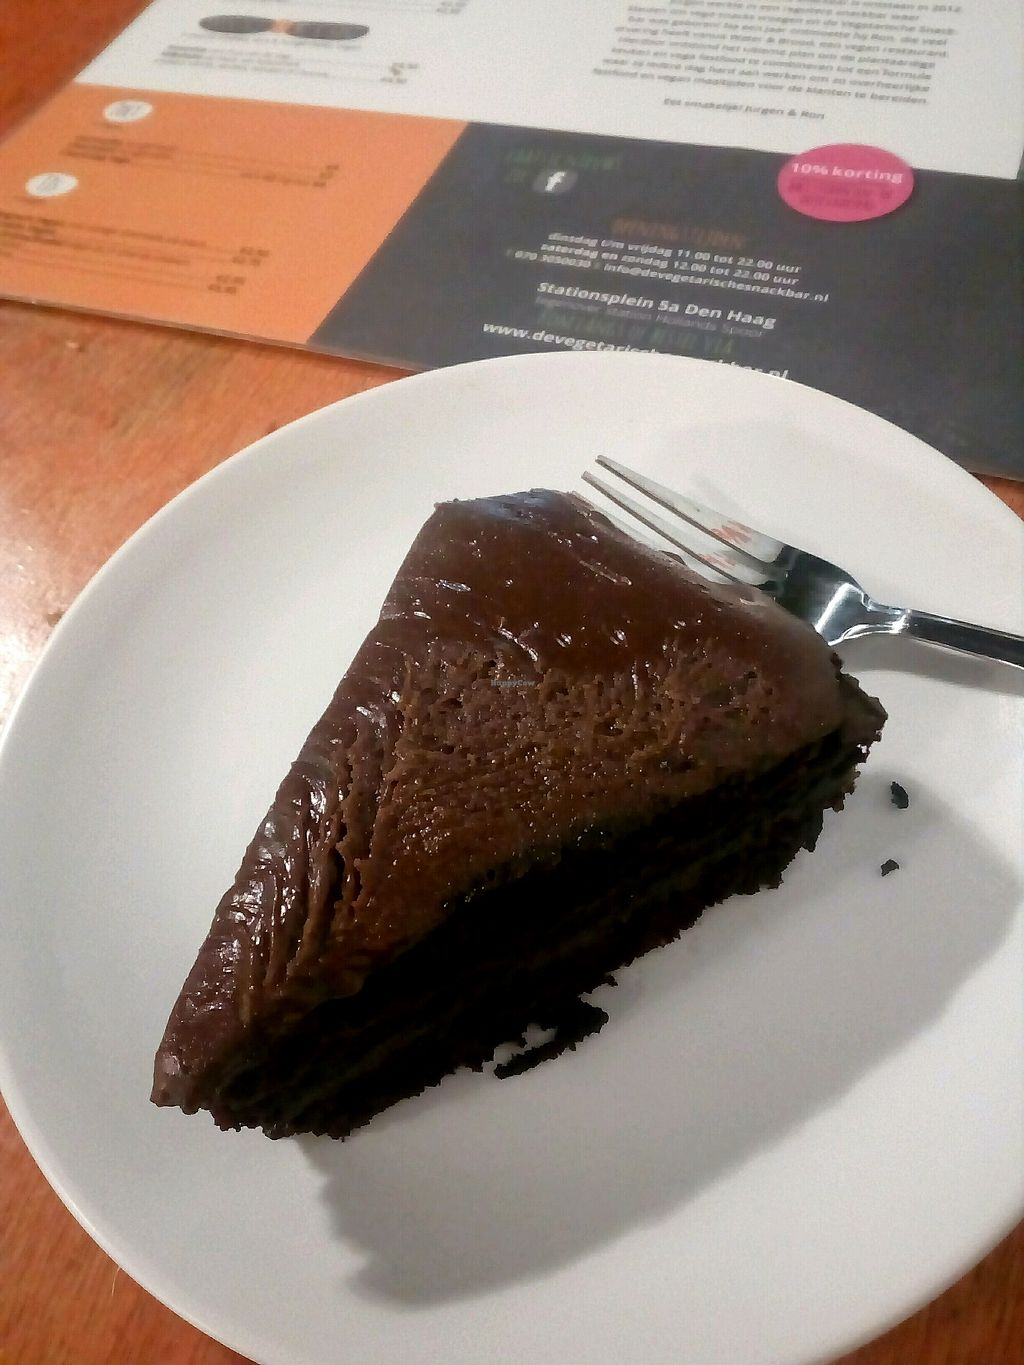 """Photo of De Vegetarische Snackbar  by <a href=""""/members/profile/wyrd"""">wyrd</a> <br/>vegan chocolate cake <br/> September 25, 2017  - <a href='/contact/abuse/image/37902/308458'>Report</a>"""